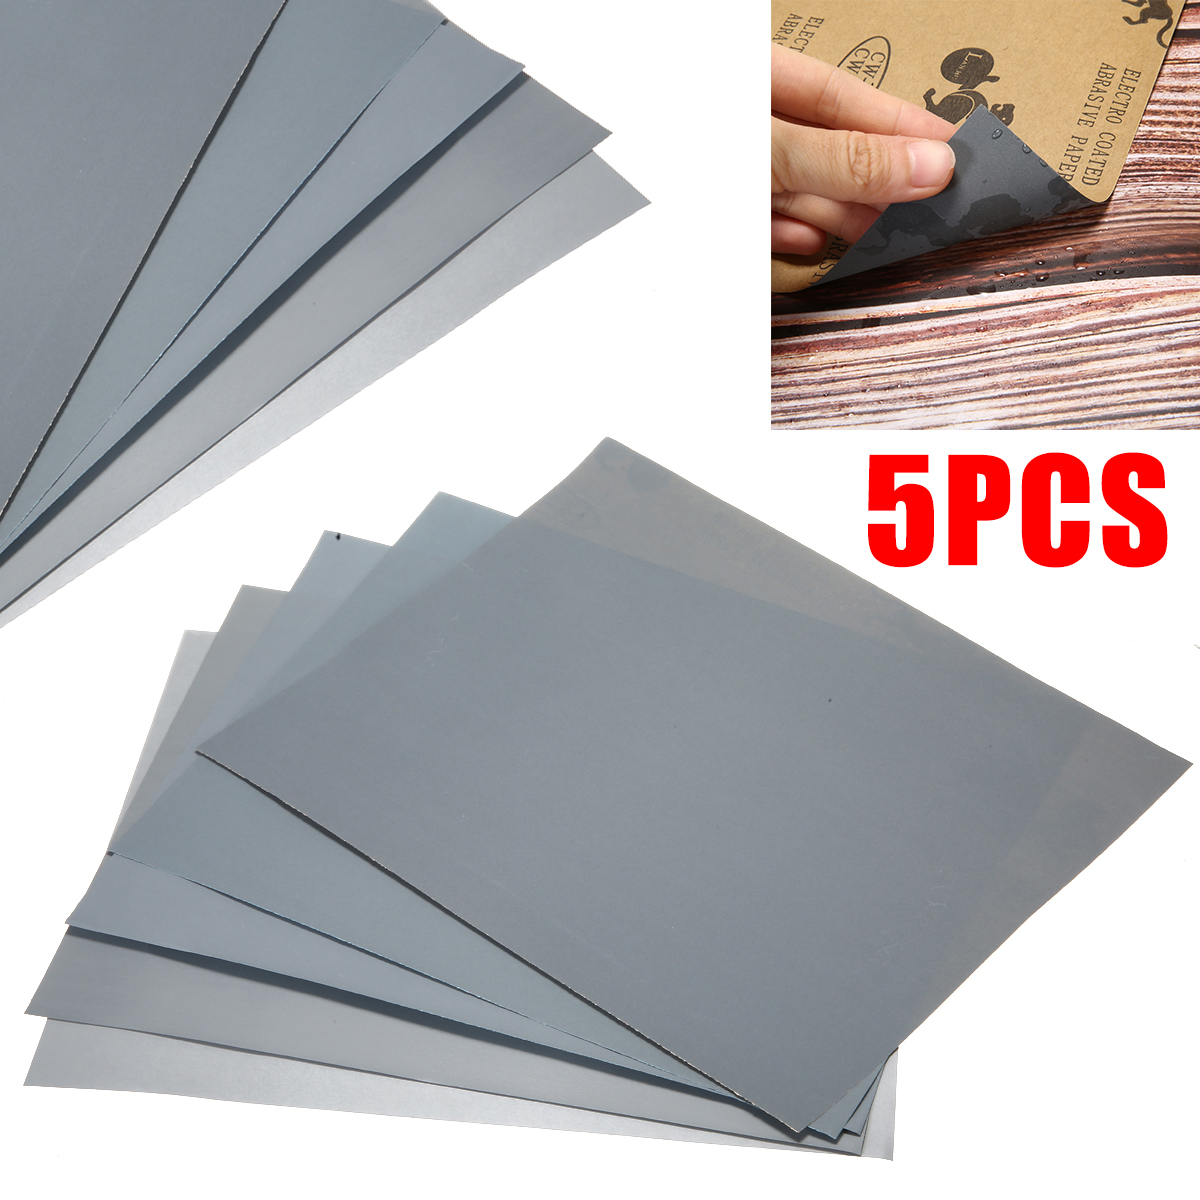 5Pcs Waterproof Sand Papers Wet And Dry Sand Paper Mixed Assorted Grit 2000 2500 3000 5000 7000 For Auto Repairing Painting Tool